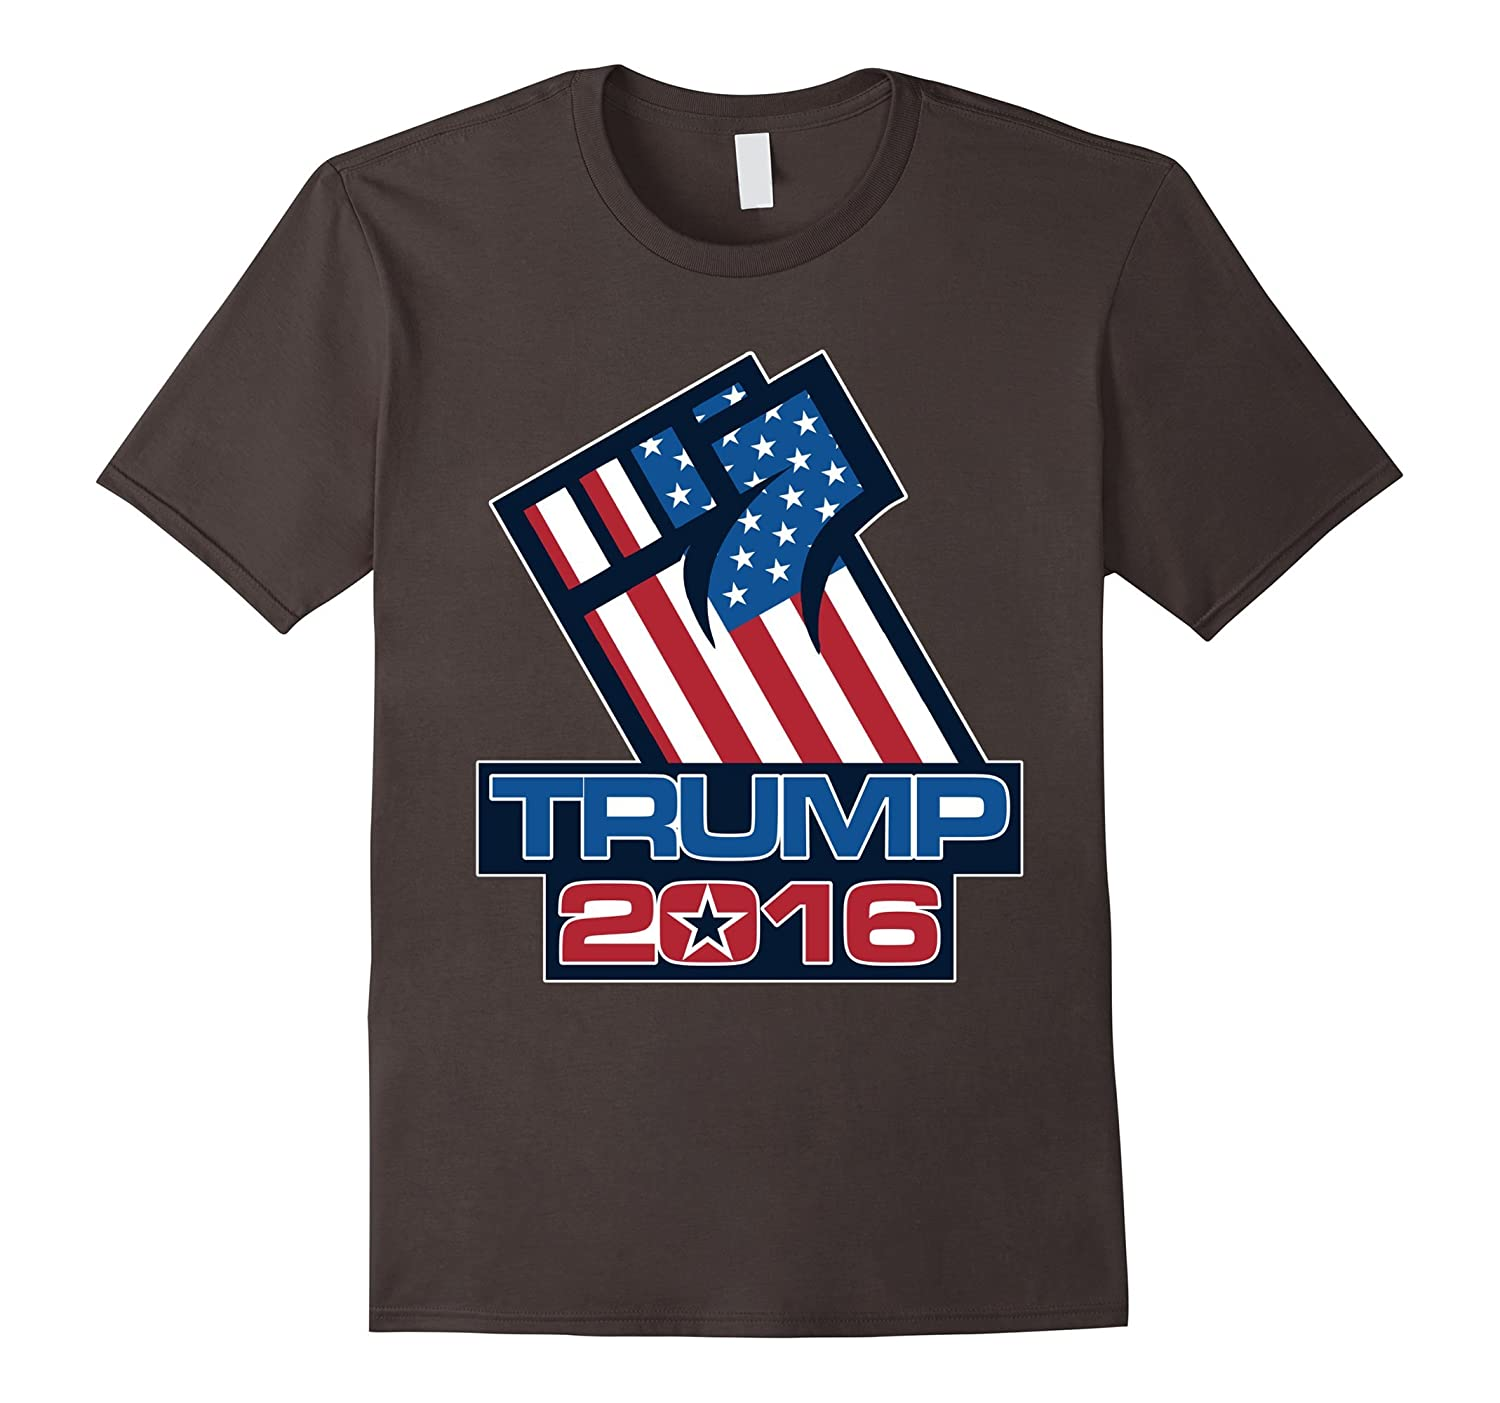 Trump 2016 Fist - Donald Trump 2016 Candidate T-shirt